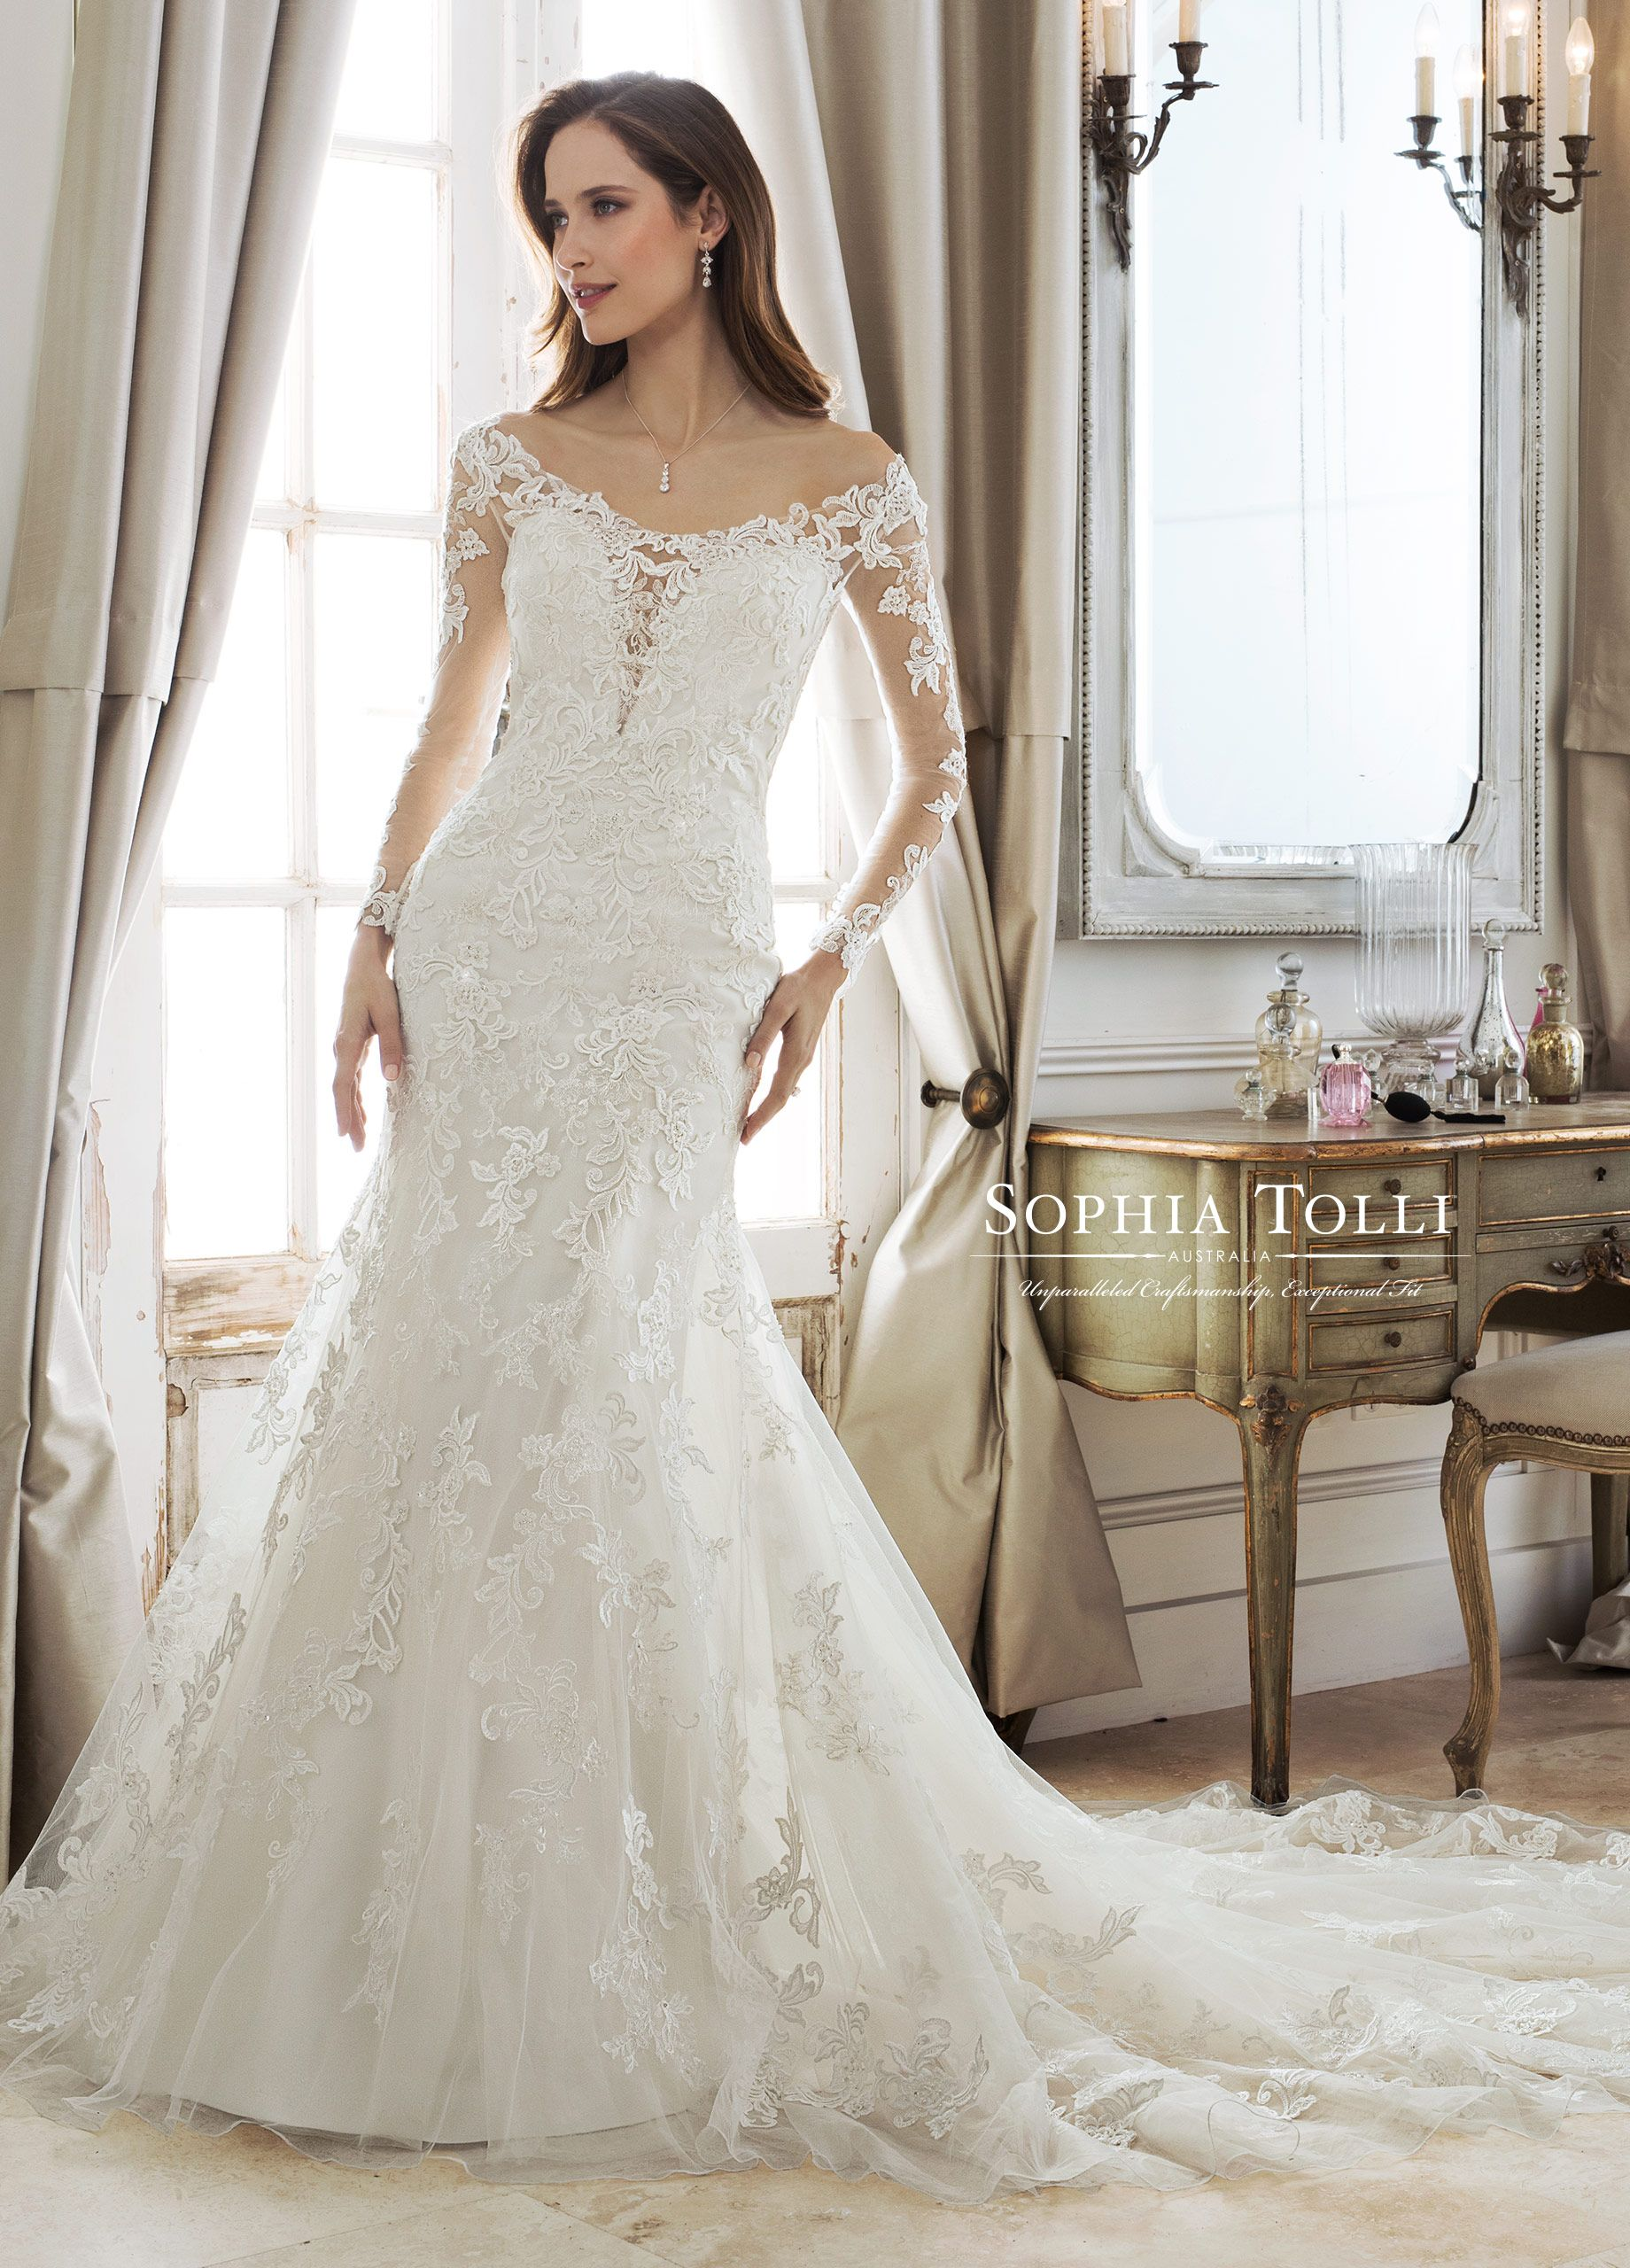 Sophia Tolli Designer Wedding Dresses A Fusion Of Modern Romance And Timeless Elegance And Timeless Romance The Sophia Tolli Australia Collection Is A Celeb Wedding Dresses Wedding Gown Gallery Wedding